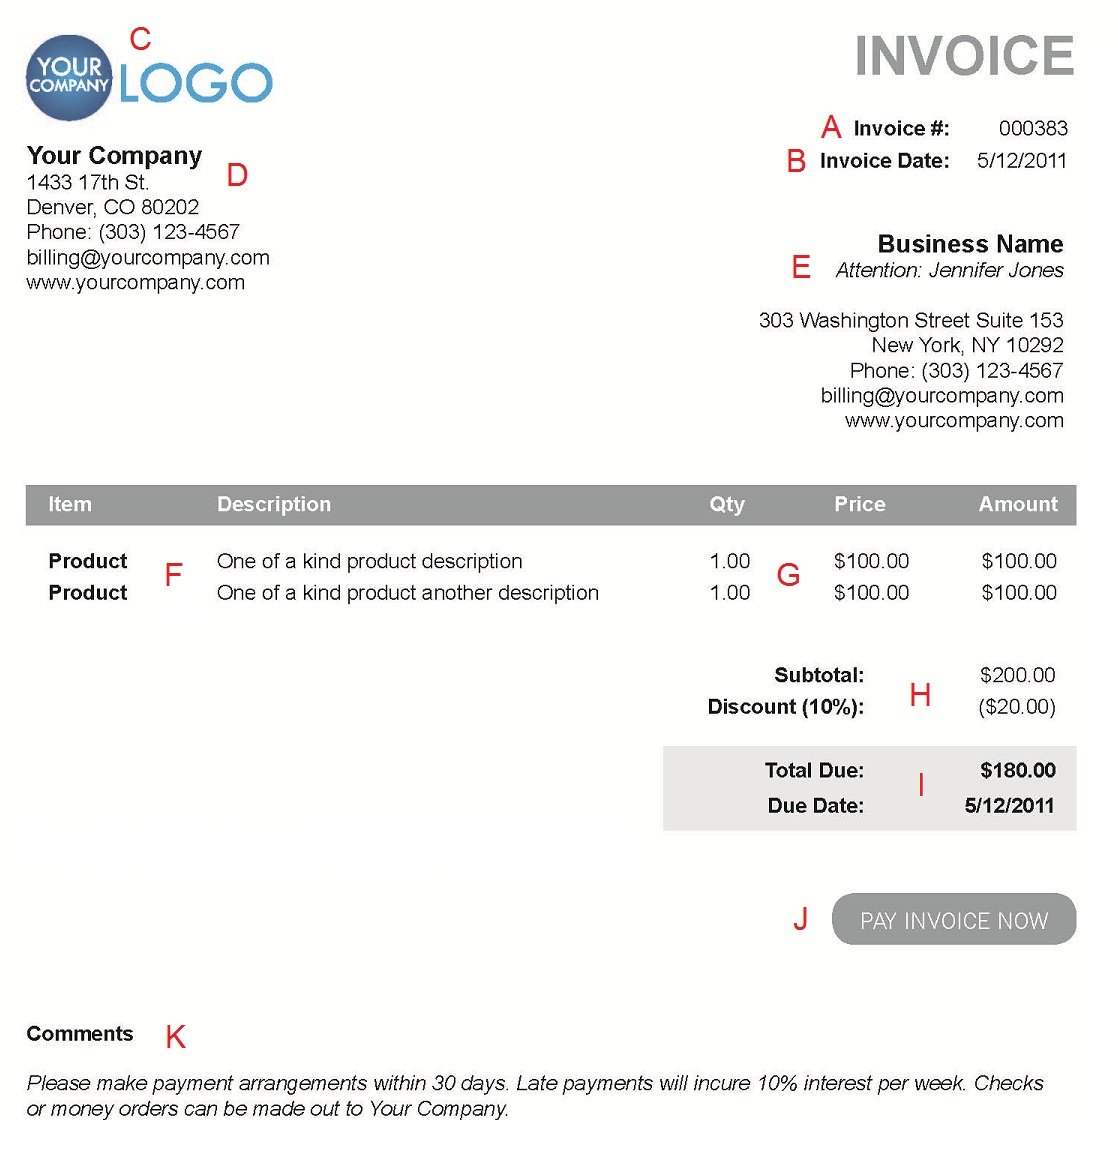 Opposenewapstandardsus  Pretty The  Different Sections Of An Electronic Payment Invoice With Hot A  With Amazing Free Blank Printable Invoice Also Invoice Template Uk Free In Addition Vertex Invoice Template And Simple Invoices Review As Well As Track Invoices Additionally Automatic Invoice Processing From Paysimplecom With Opposenewapstandardsus  Hot The  Different Sections Of An Electronic Payment Invoice With Amazing A  And Pretty Free Blank Printable Invoice Also Invoice Template Uk Free In Addition Vertex Invoice Template From Paysimplecom